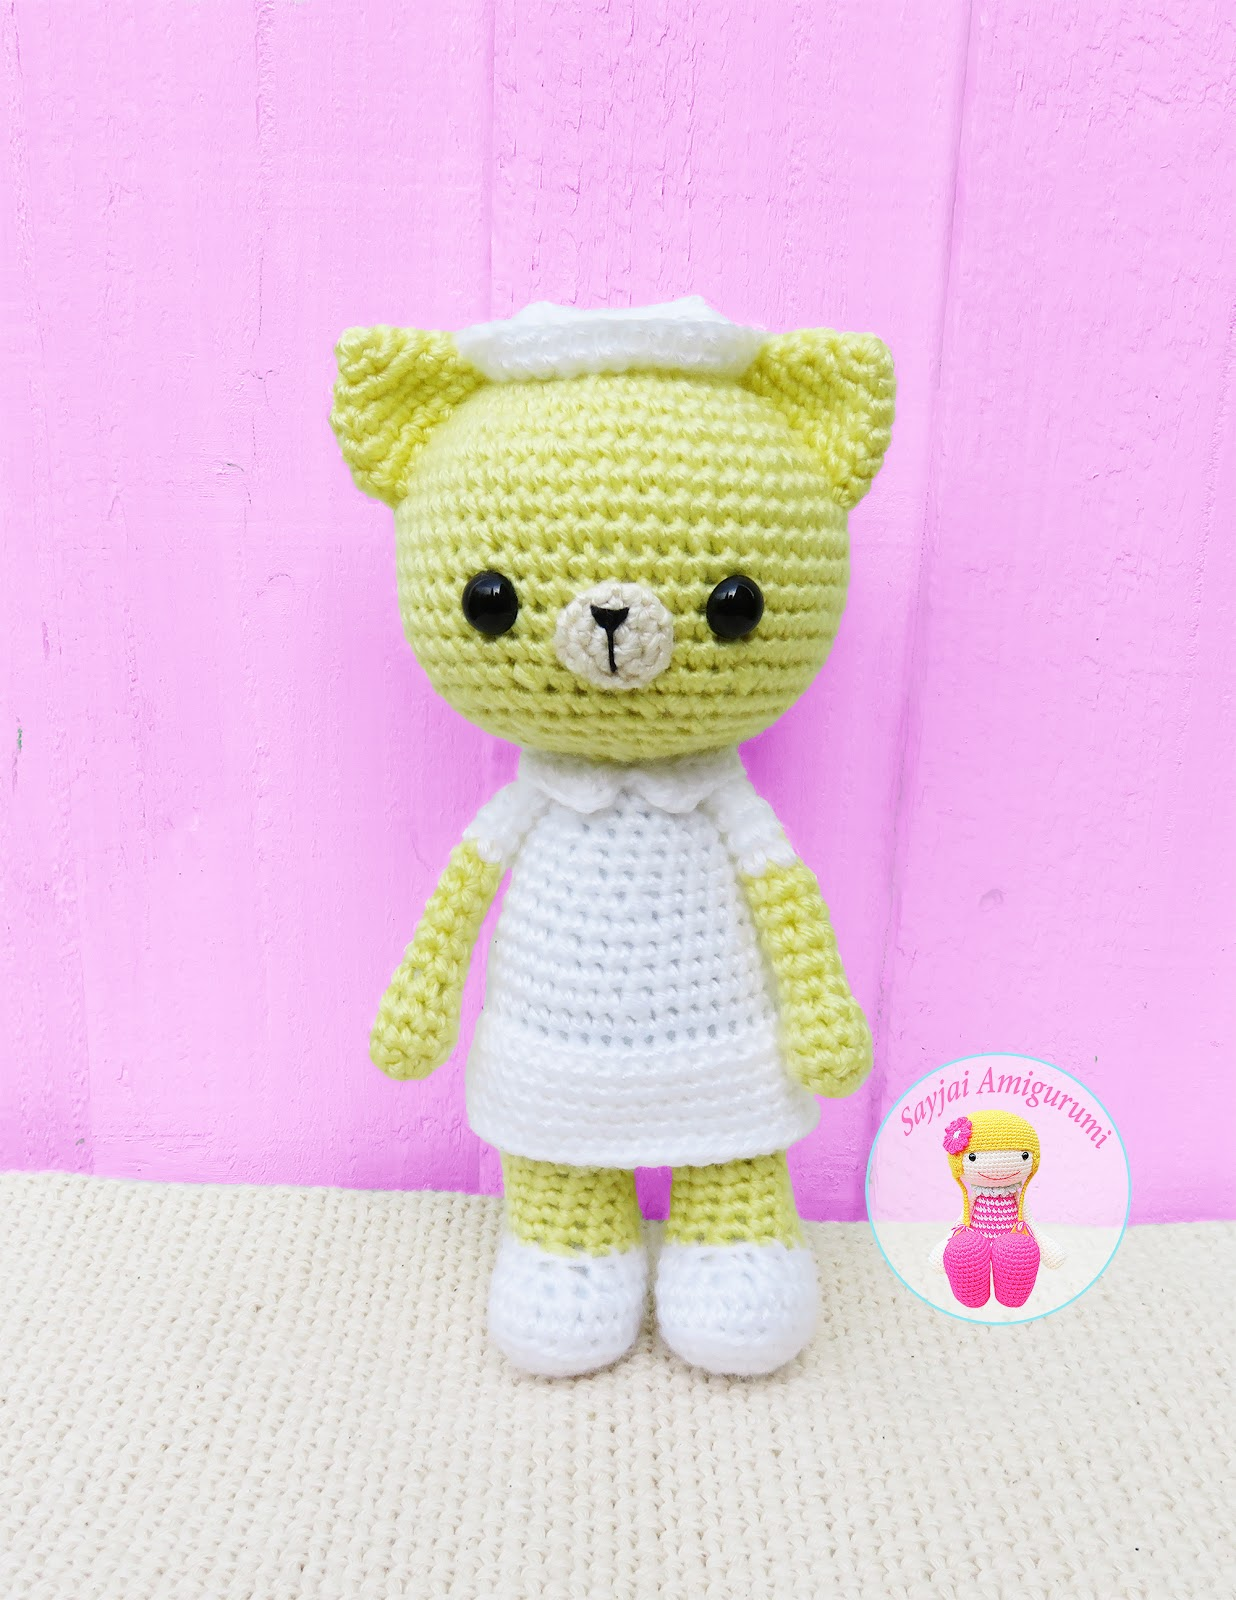 Amigurumi Nurse - PDF WRITTEN PATTERN (digital item) | Muñeca ... | 1600x1236